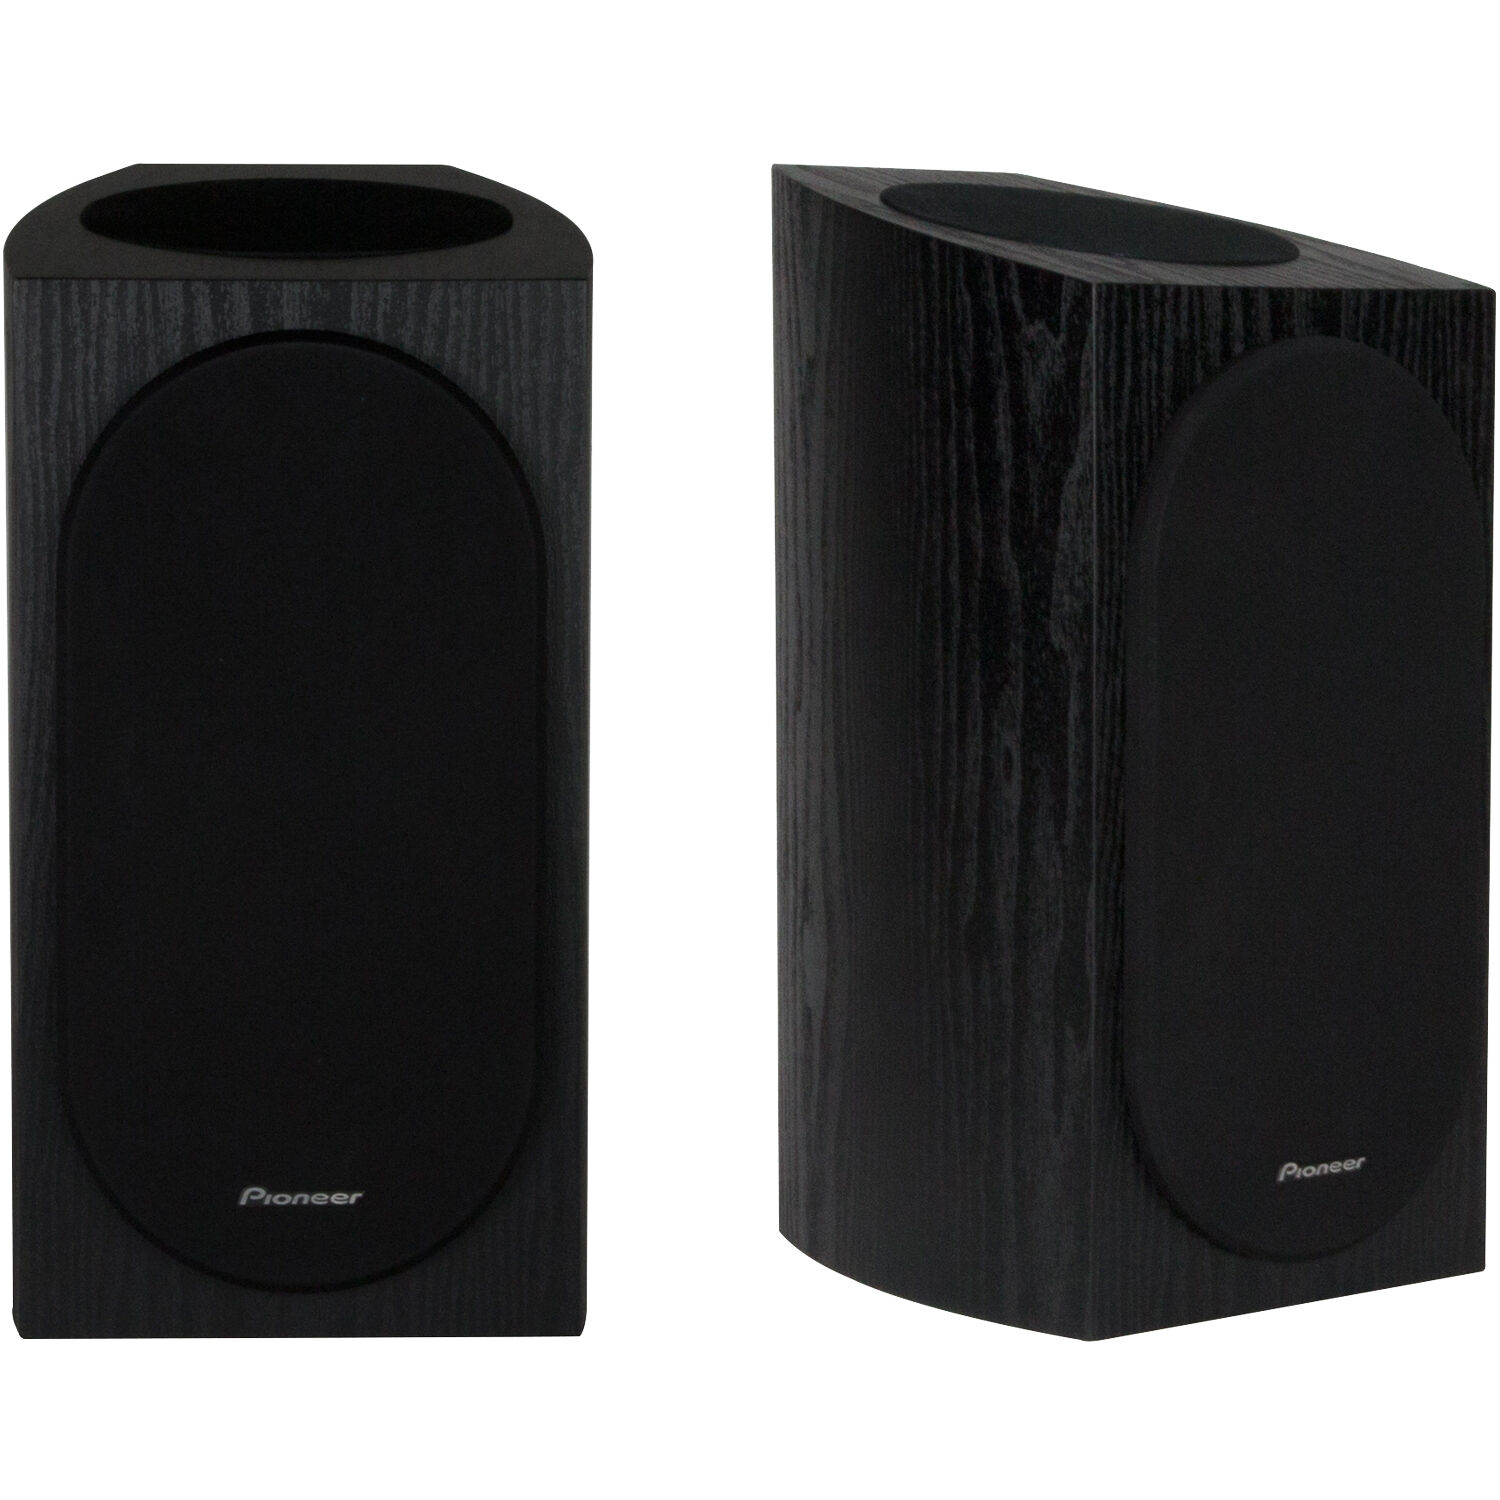 Pioneer SP BS22A LR Andrew Jones Designed Dolby Atmos Bookshelf Speaker Pair 1 Of 6FREE Shipping See More